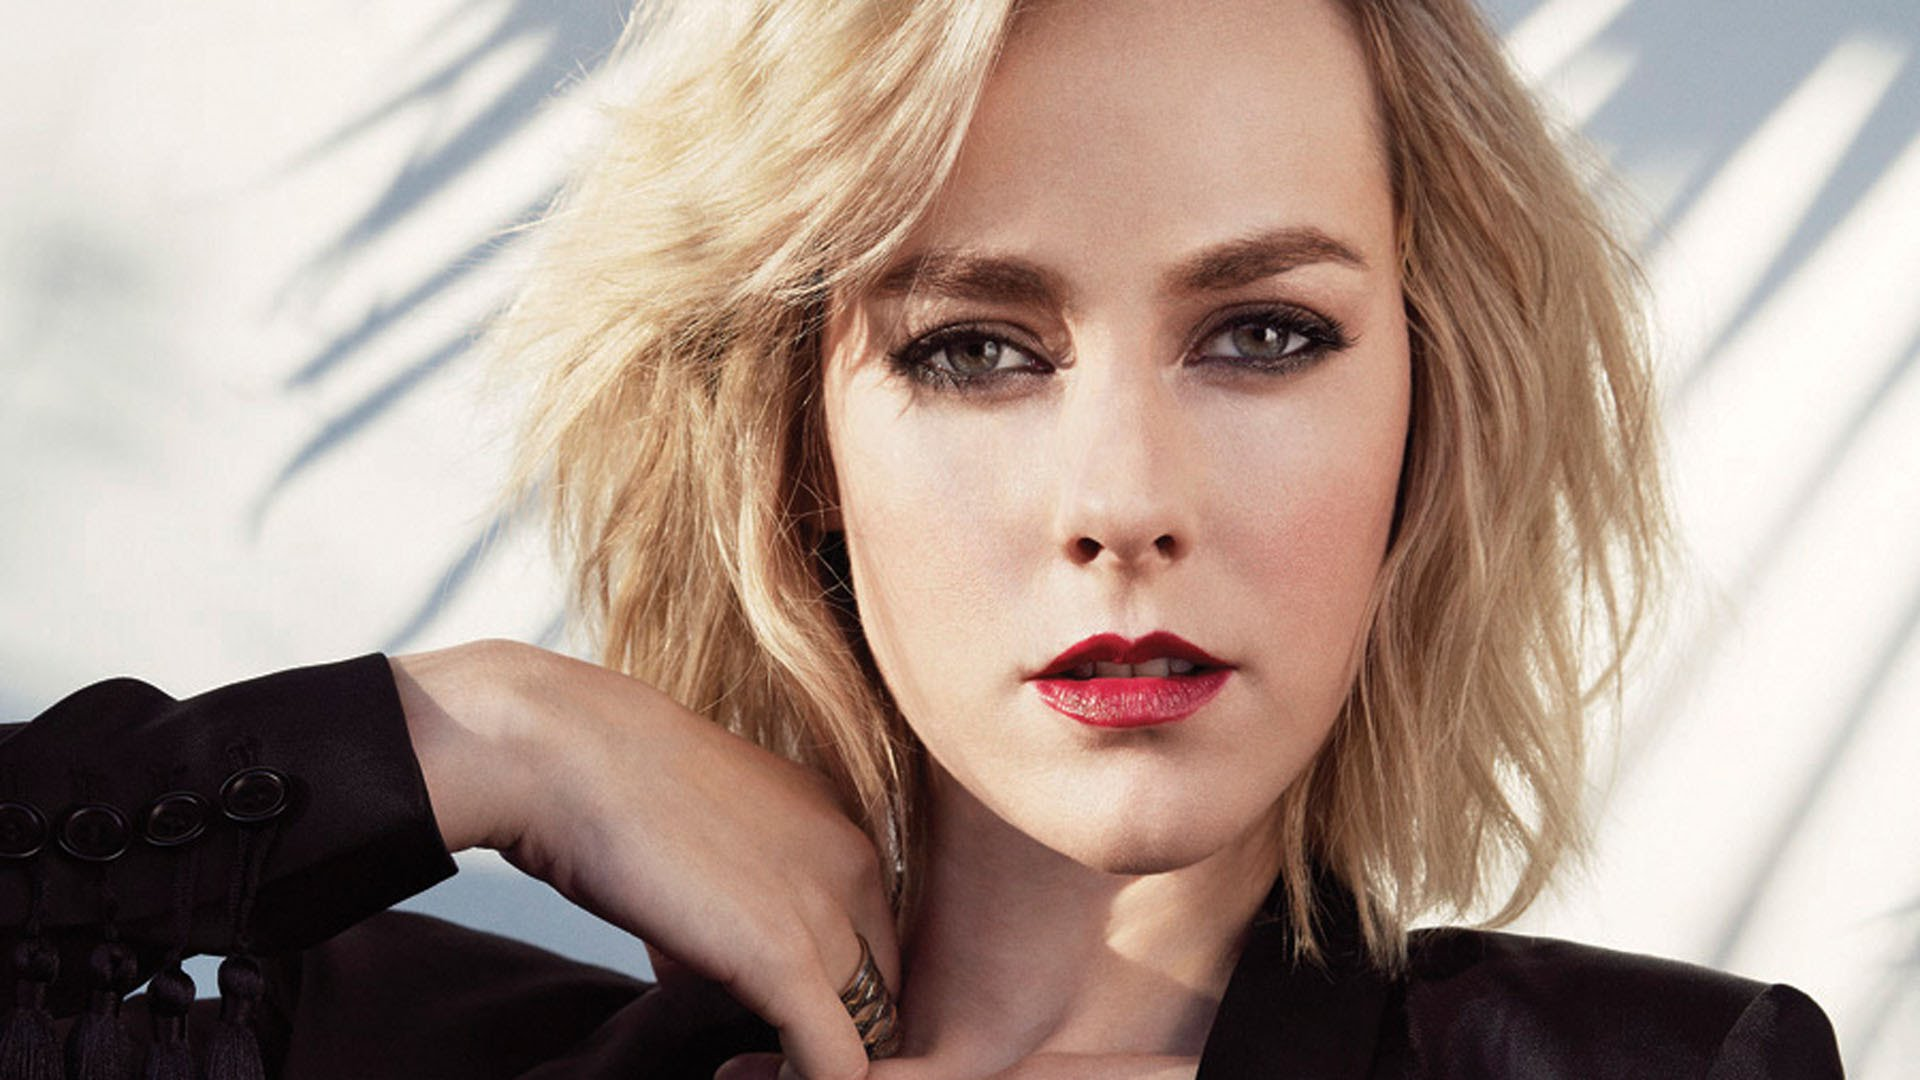 jena-malone-wallpapers-26834-5073310